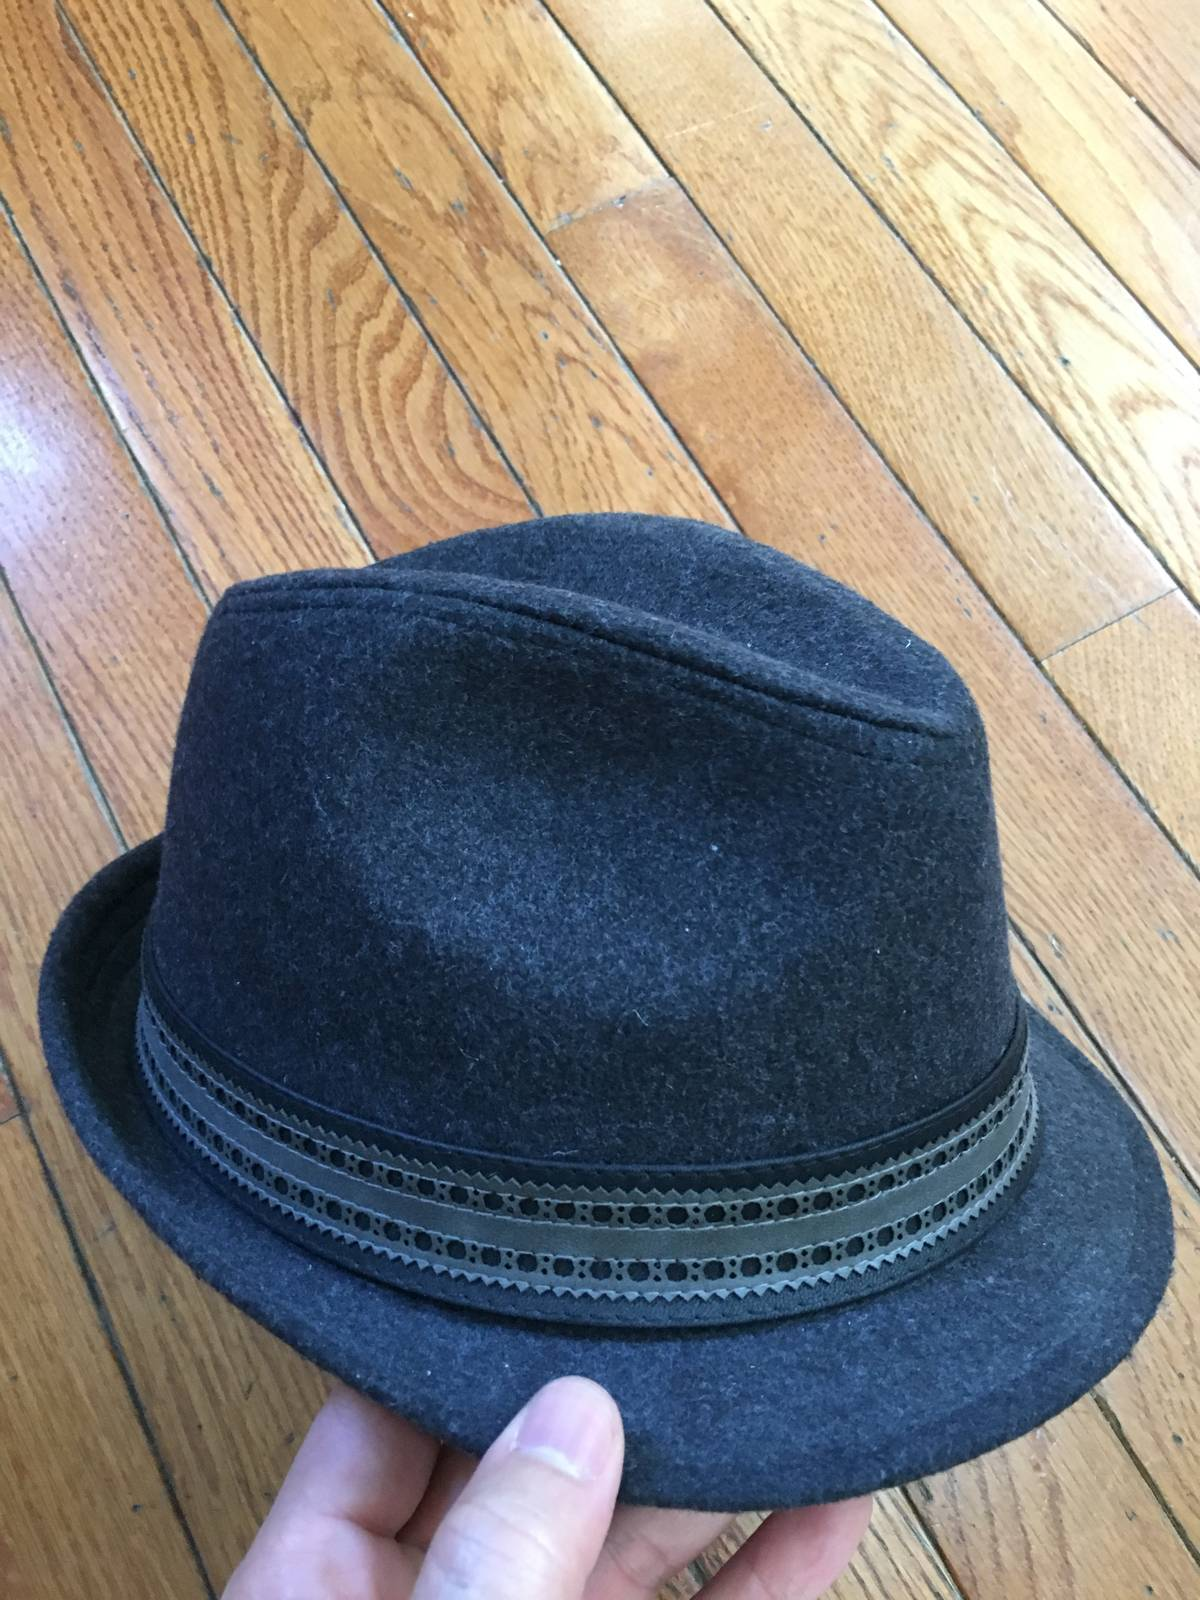 Cremieux Charcoal Fedora Hat Size 38 - Hats for Sale - Grailed b859c862672